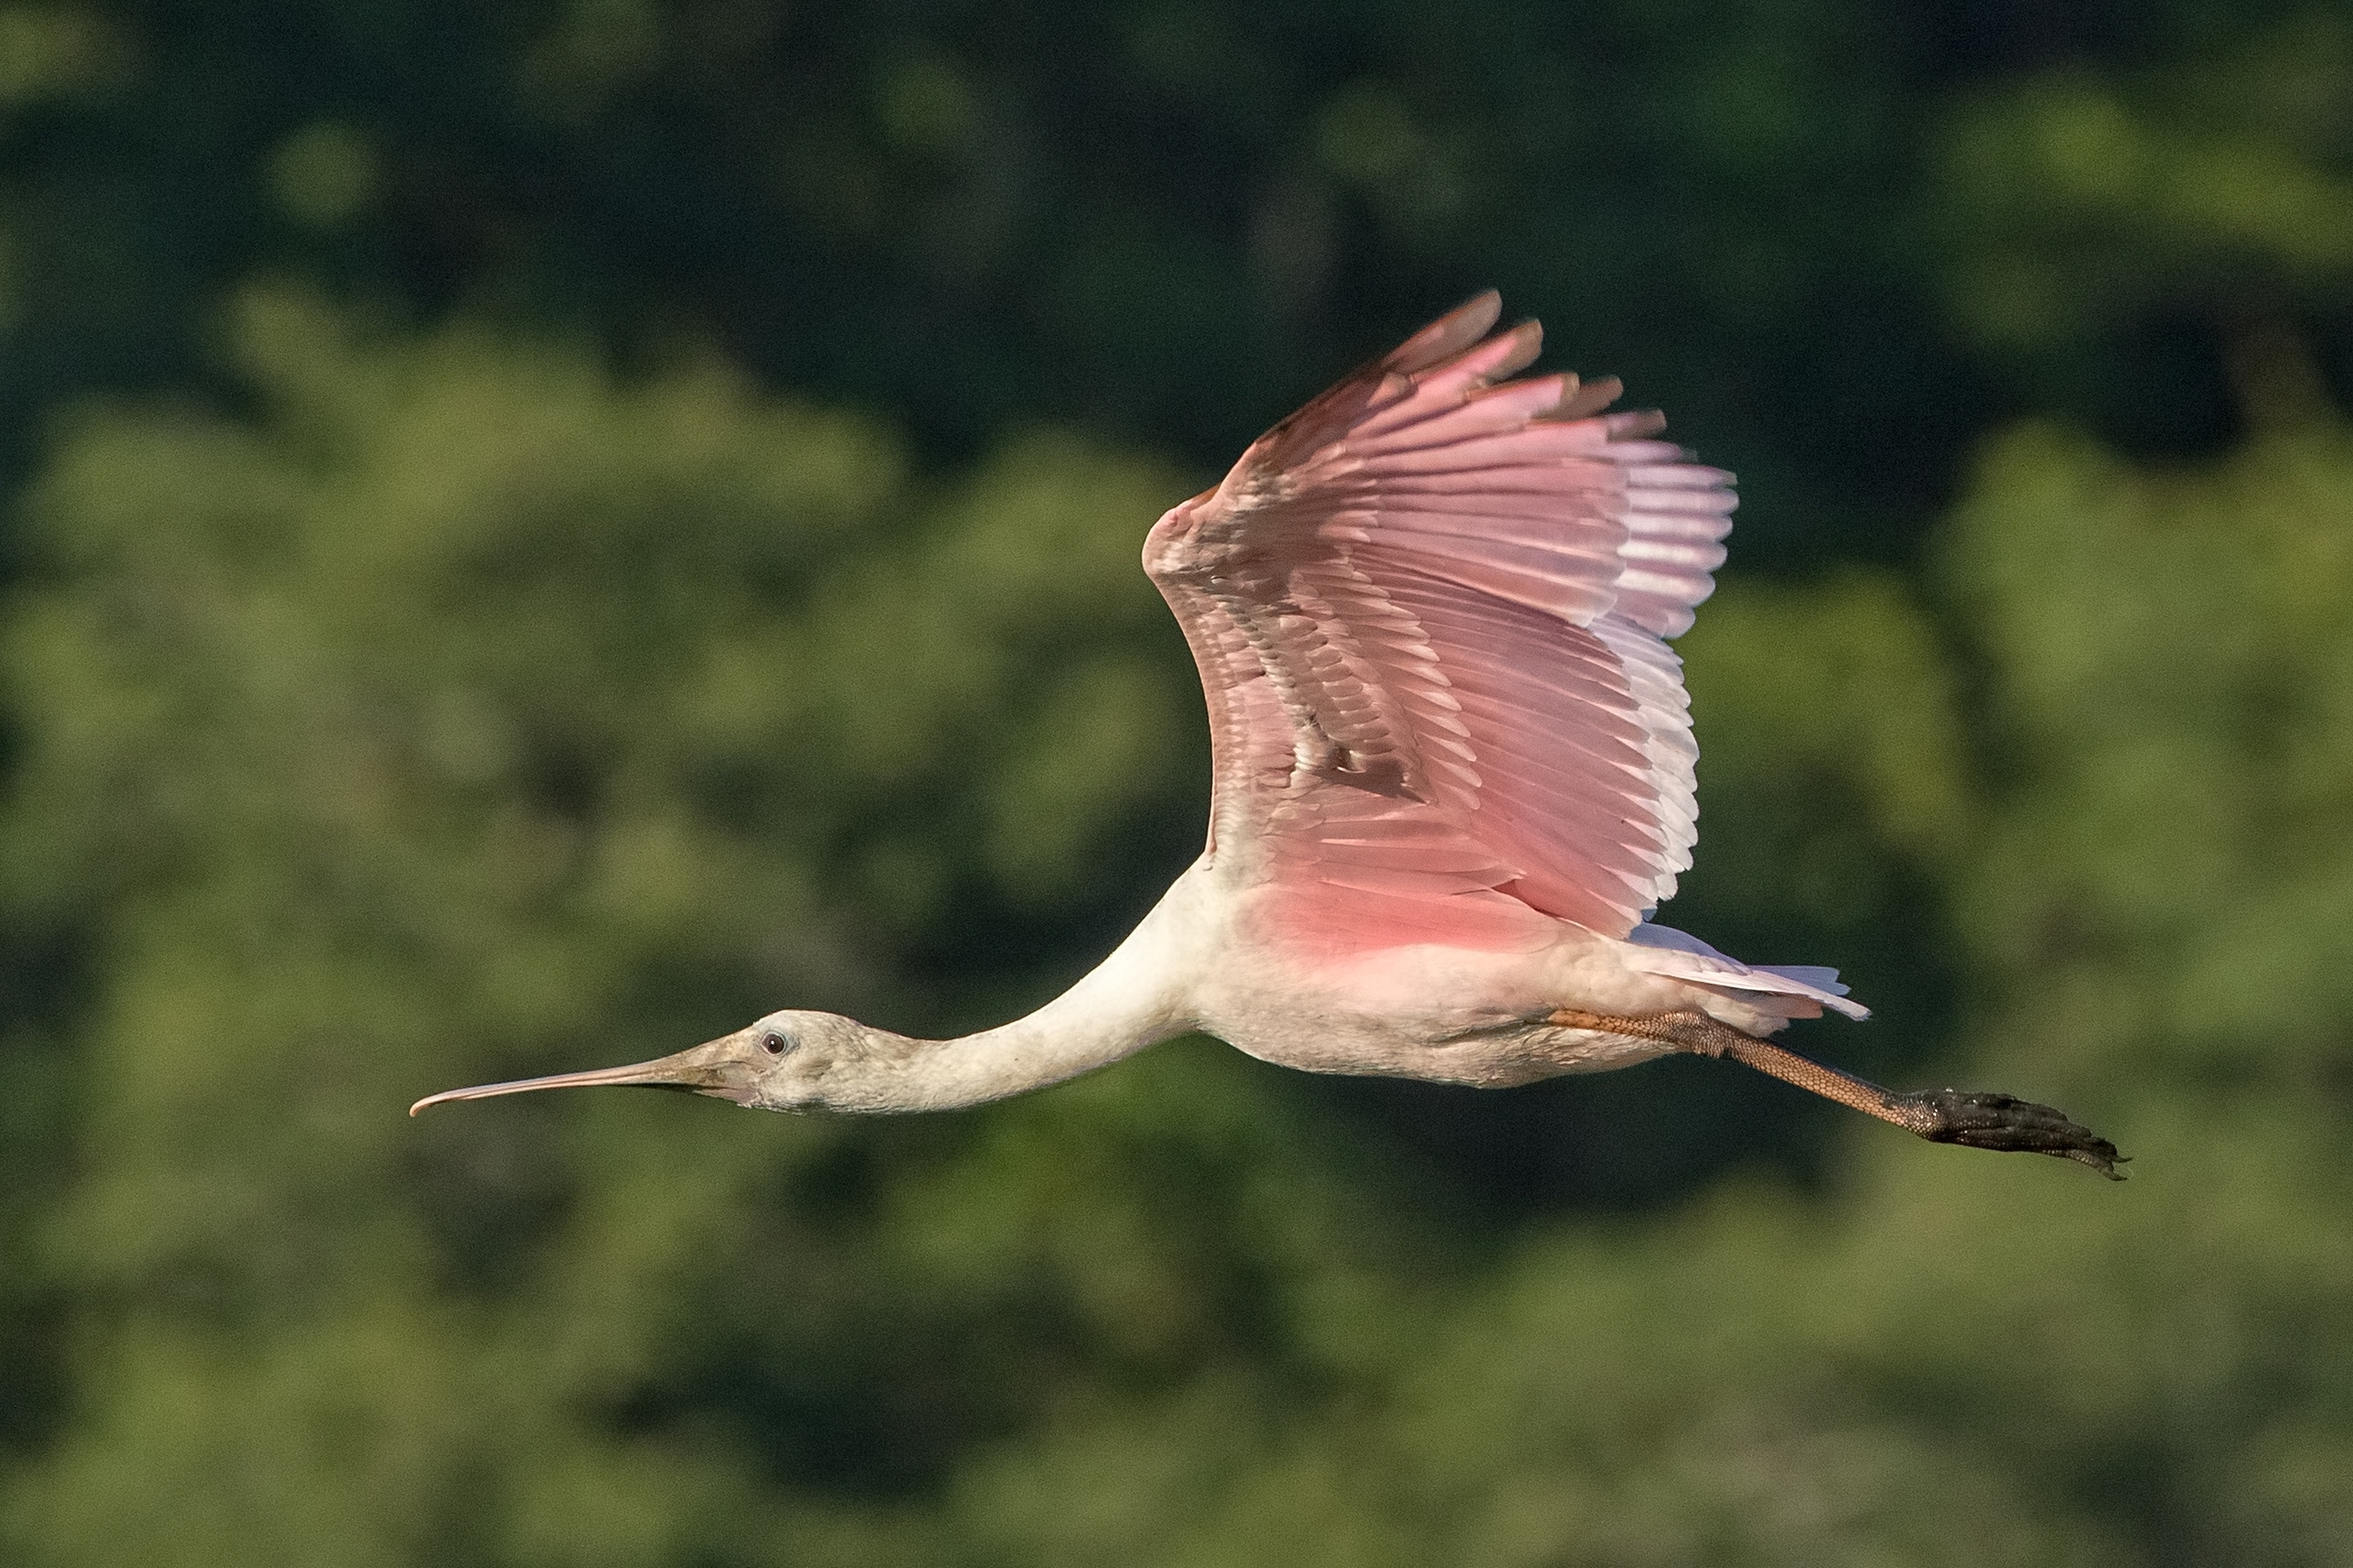 Roseate Spoonbill Dog Day flyby....